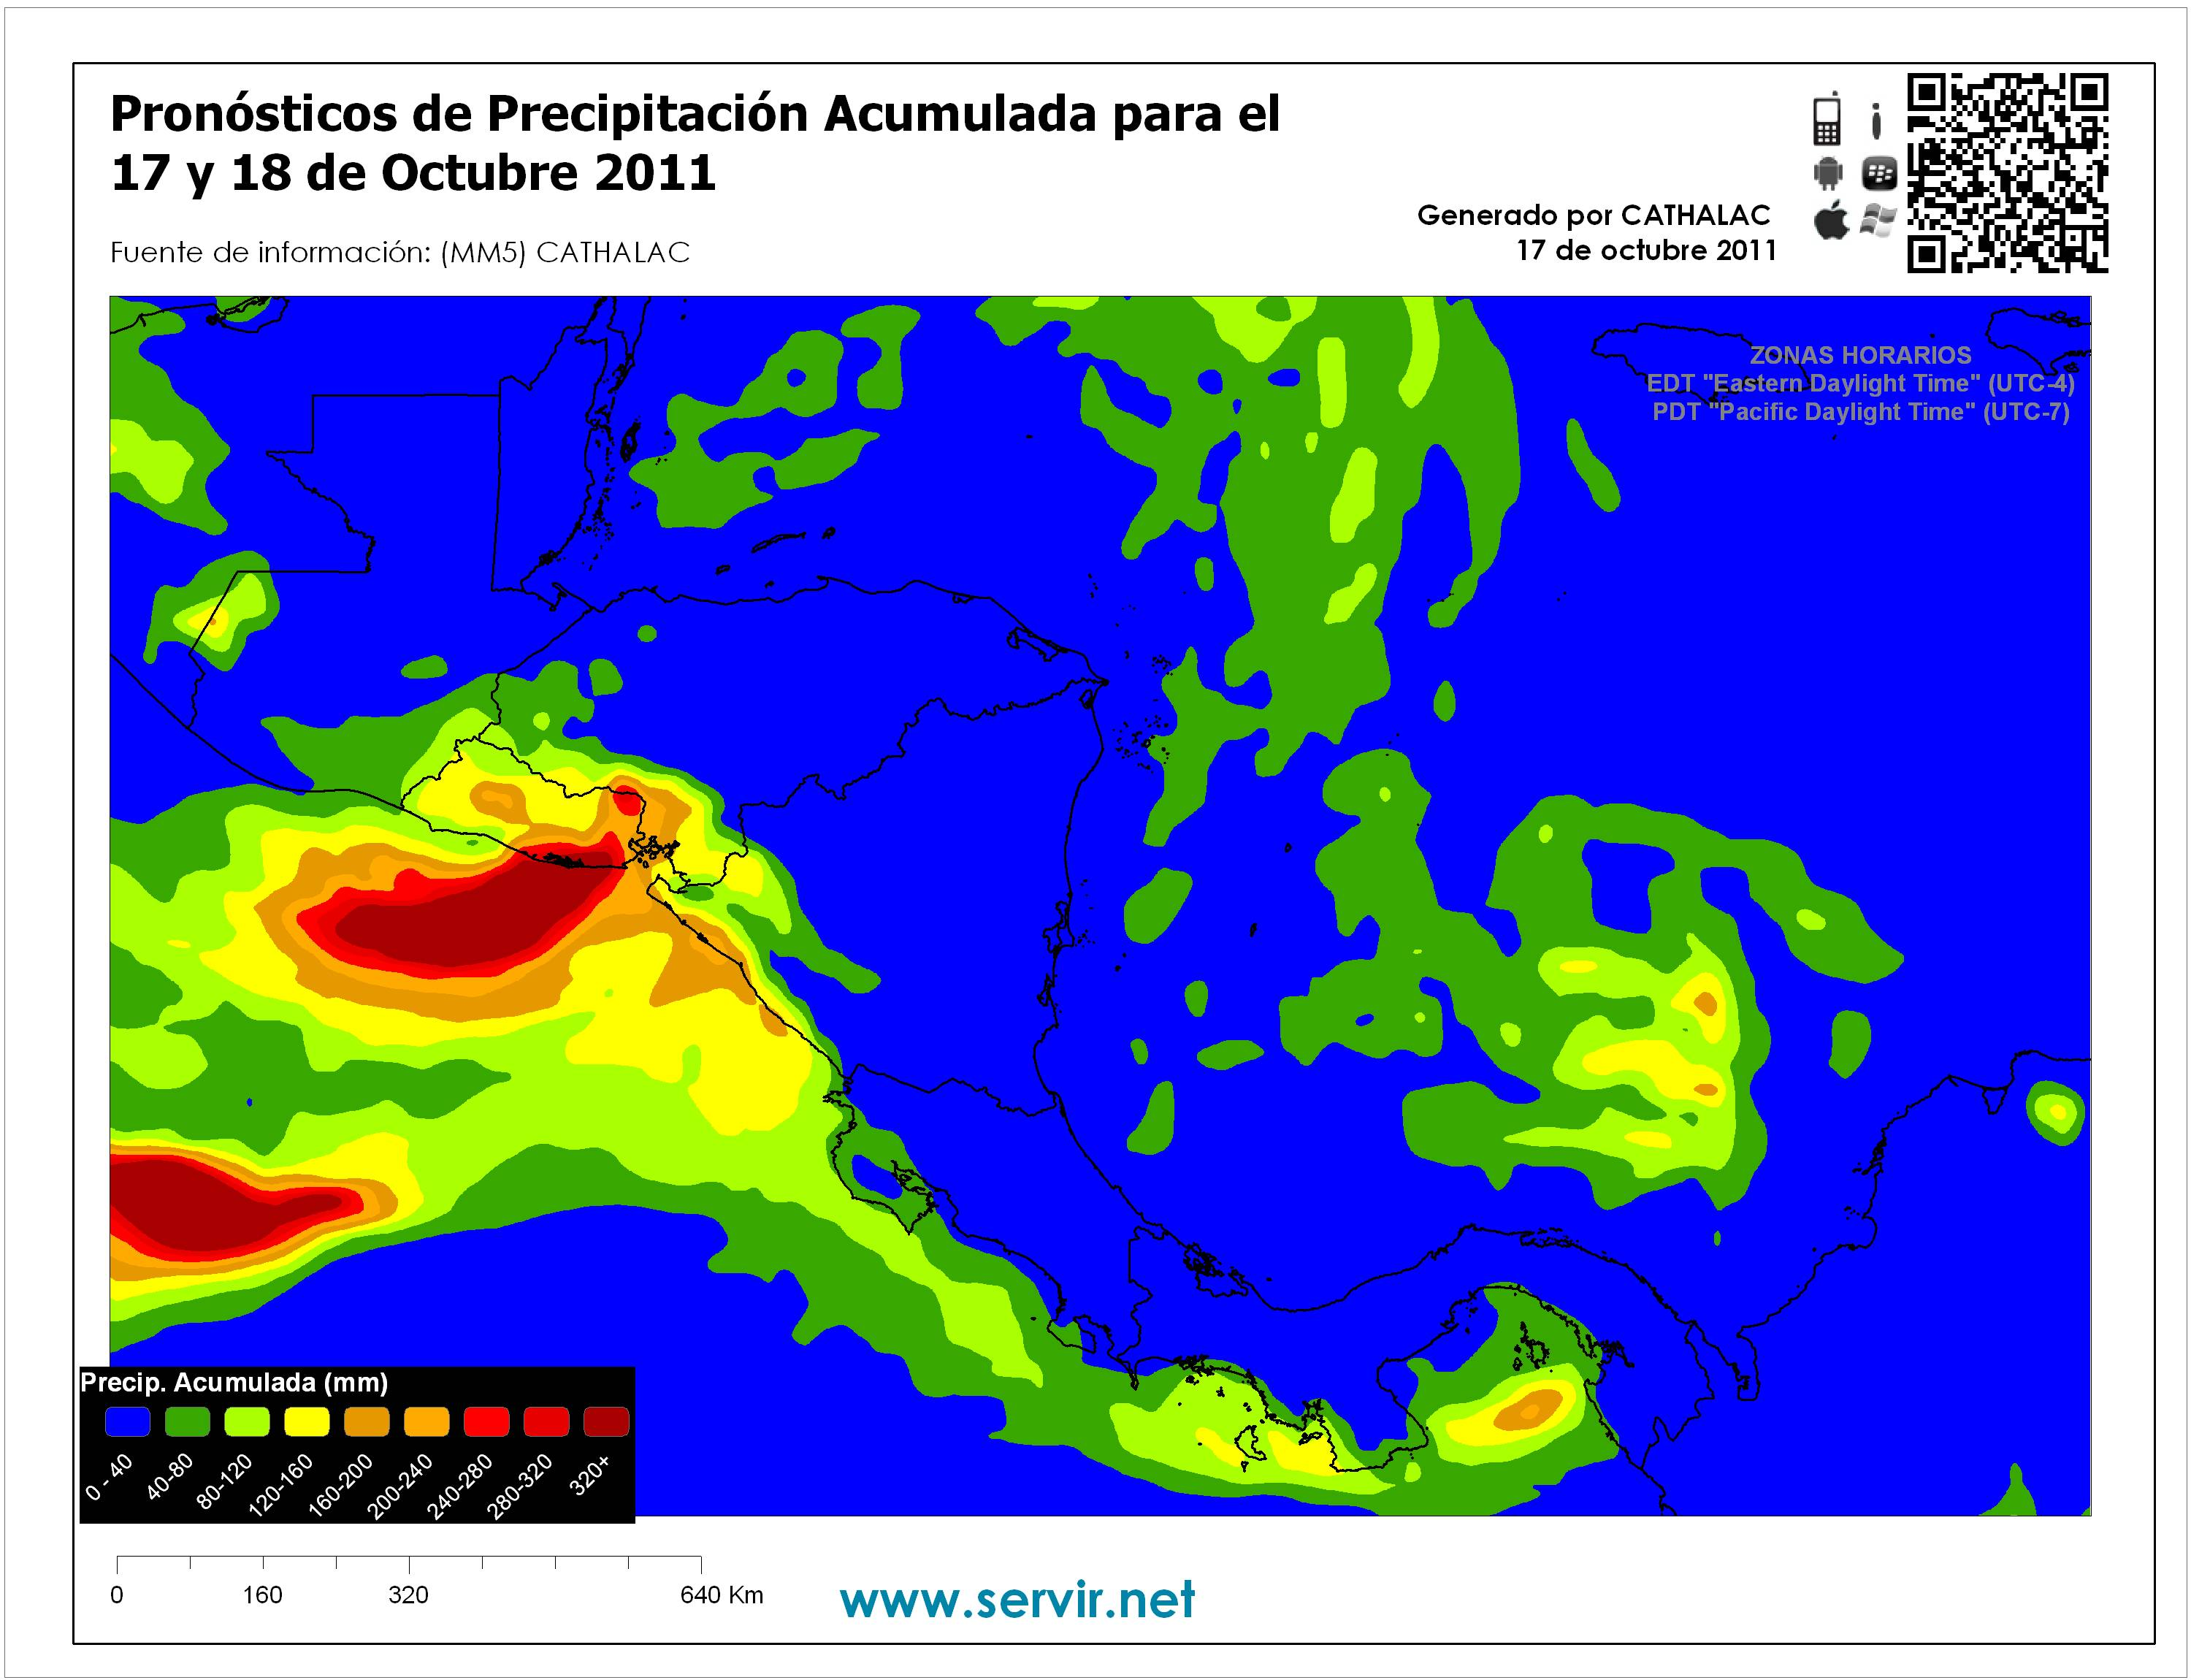 SERVIR analysis of heavy rains in the region of Central America and